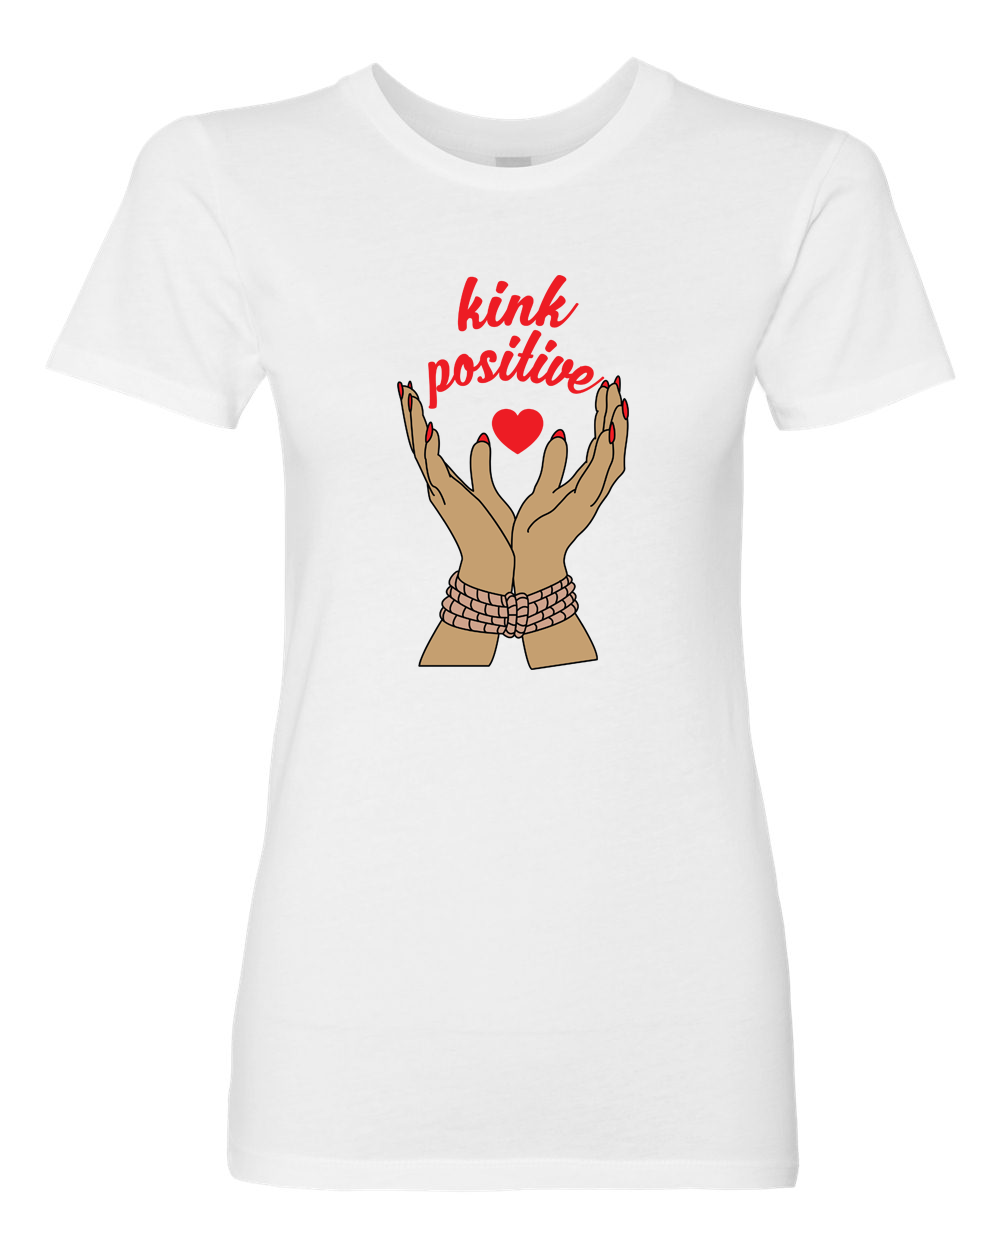 Kink Positive - Kawaii Kink - Tee - Top - bondage fashion design - bdsm pride at BABY VOODOO - Shop now at BABYVOODOO.COM fetish community